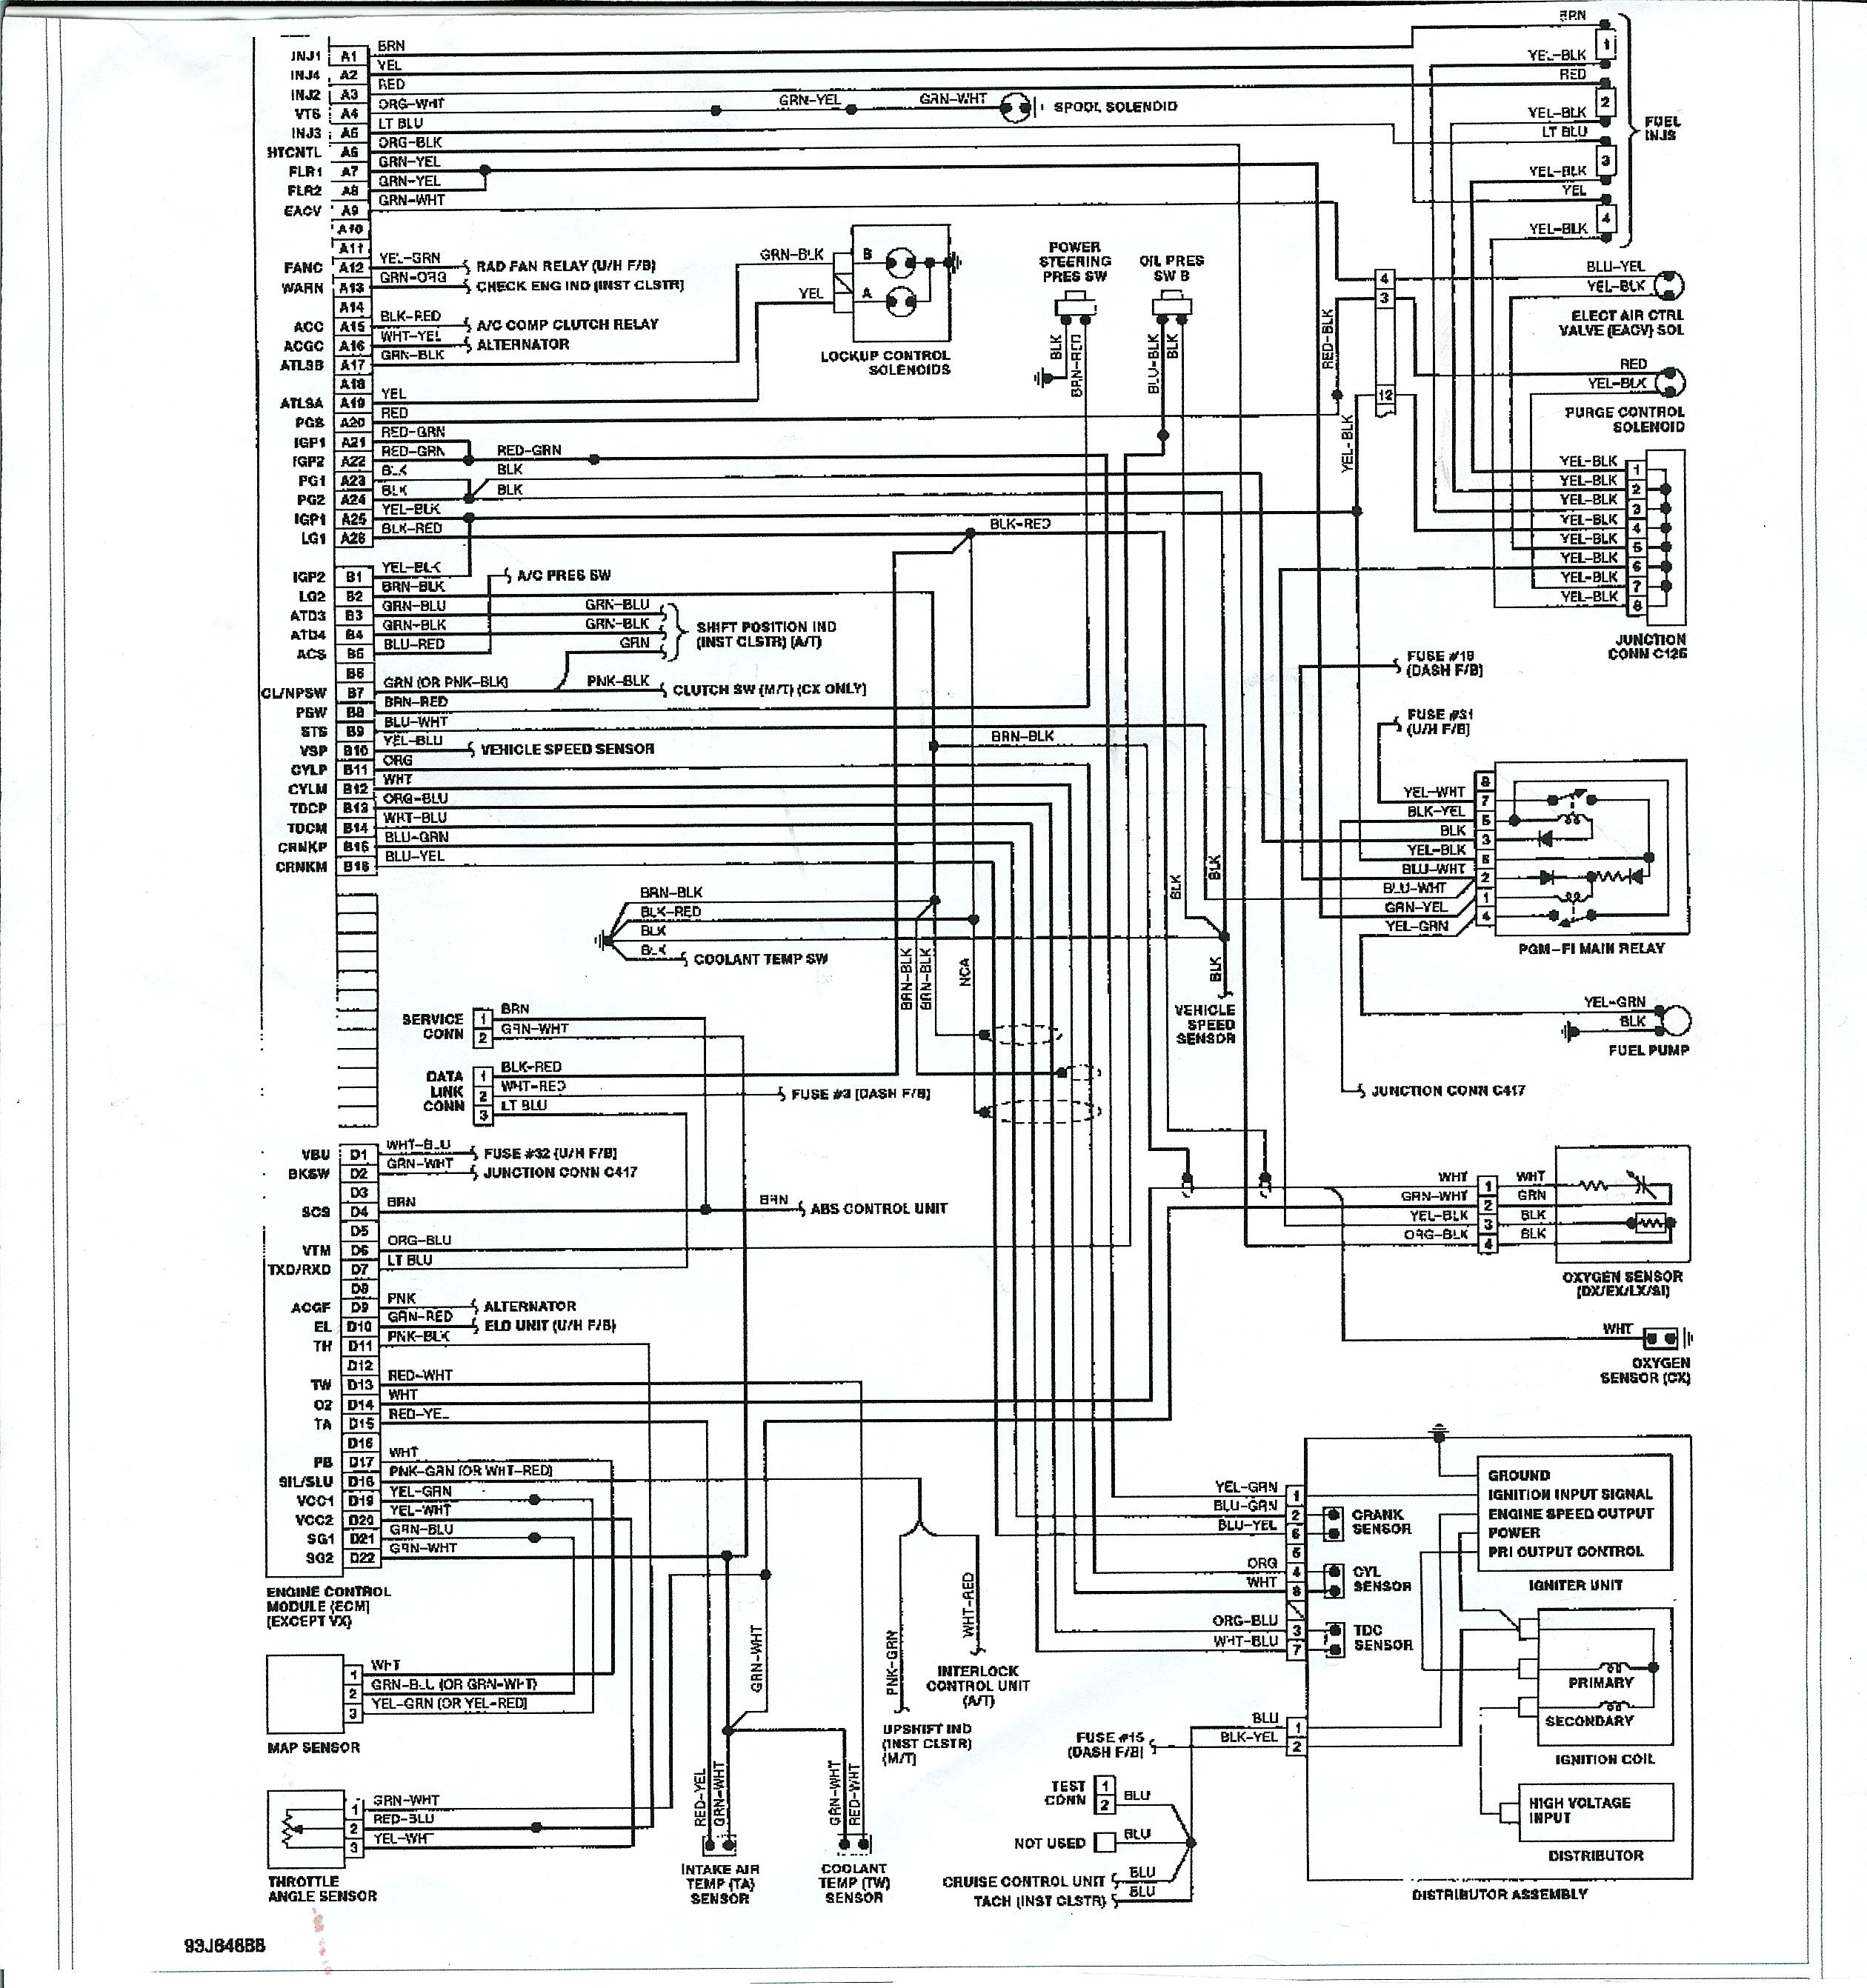 403660d1445082998 integra tcm wiring schematic auto swap dxecu diagrams 10001383 1994 acura integra wiring diagram 1996 integra wiring diagram at bayanpartner.co